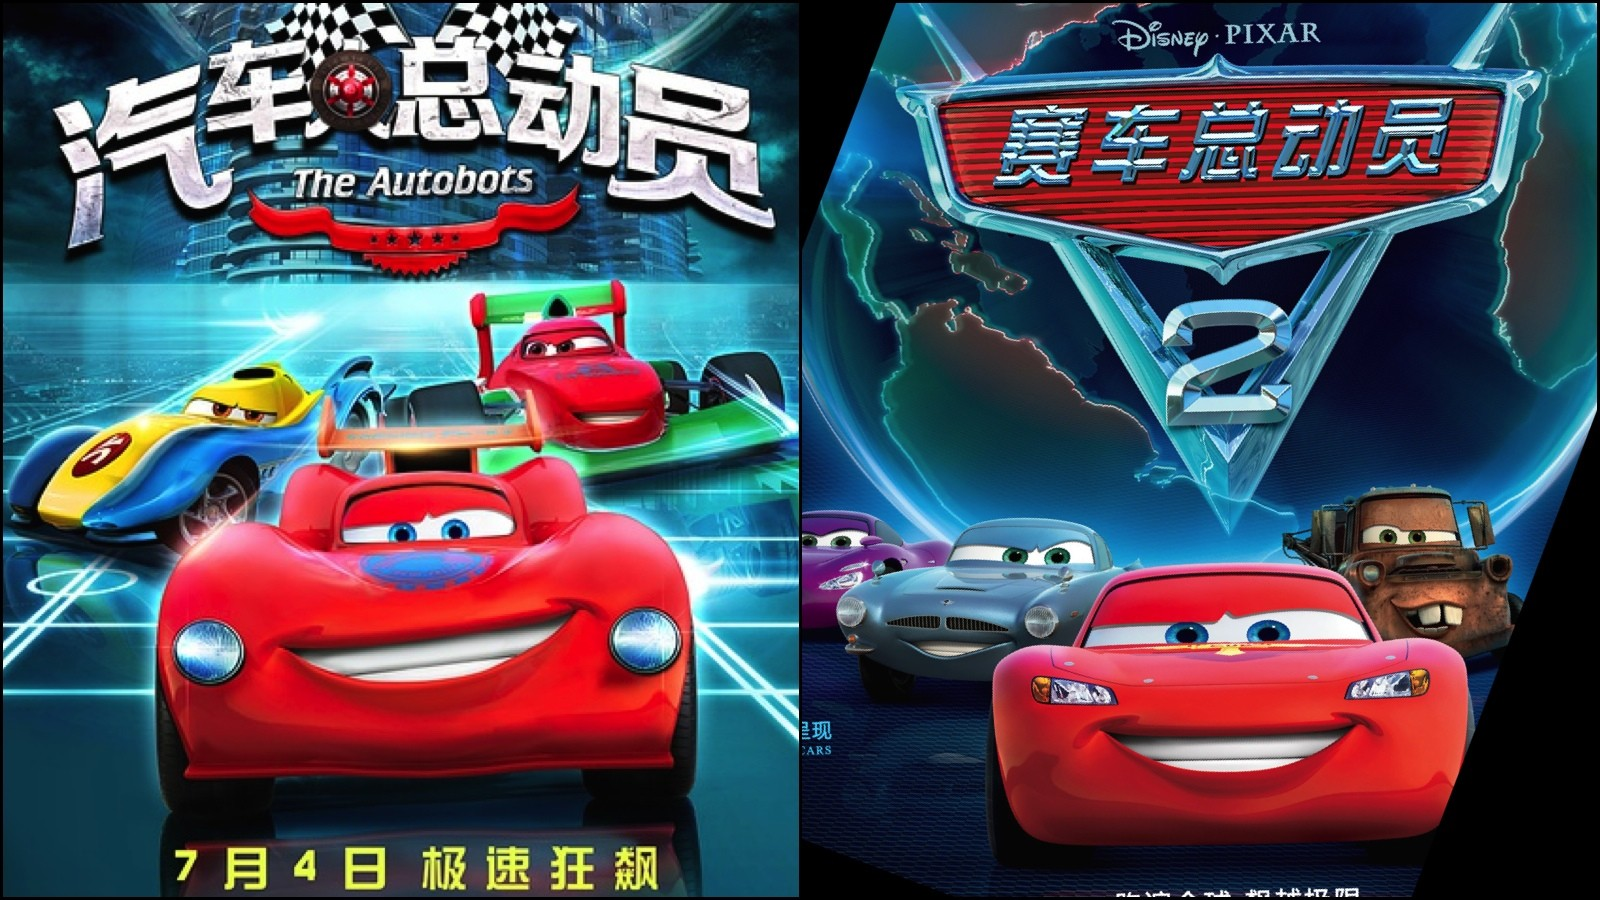 chinese knock off of disneys cars set for sequel cnn